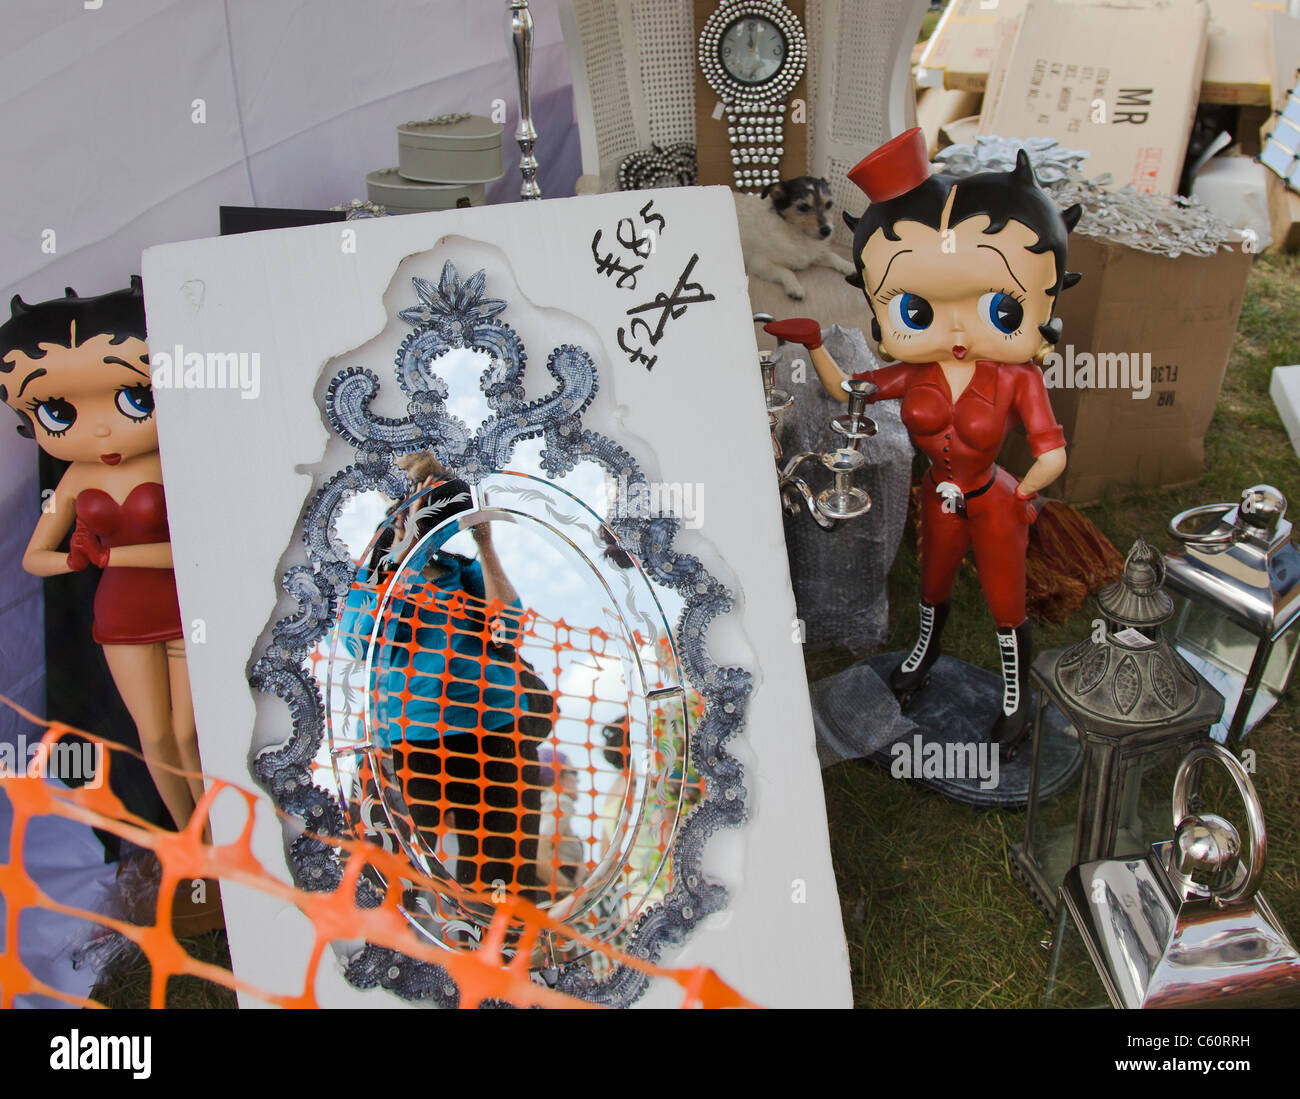 Bric a brac, mirror, Epsom Races, stall Betty Boop, reflection - Stock Image